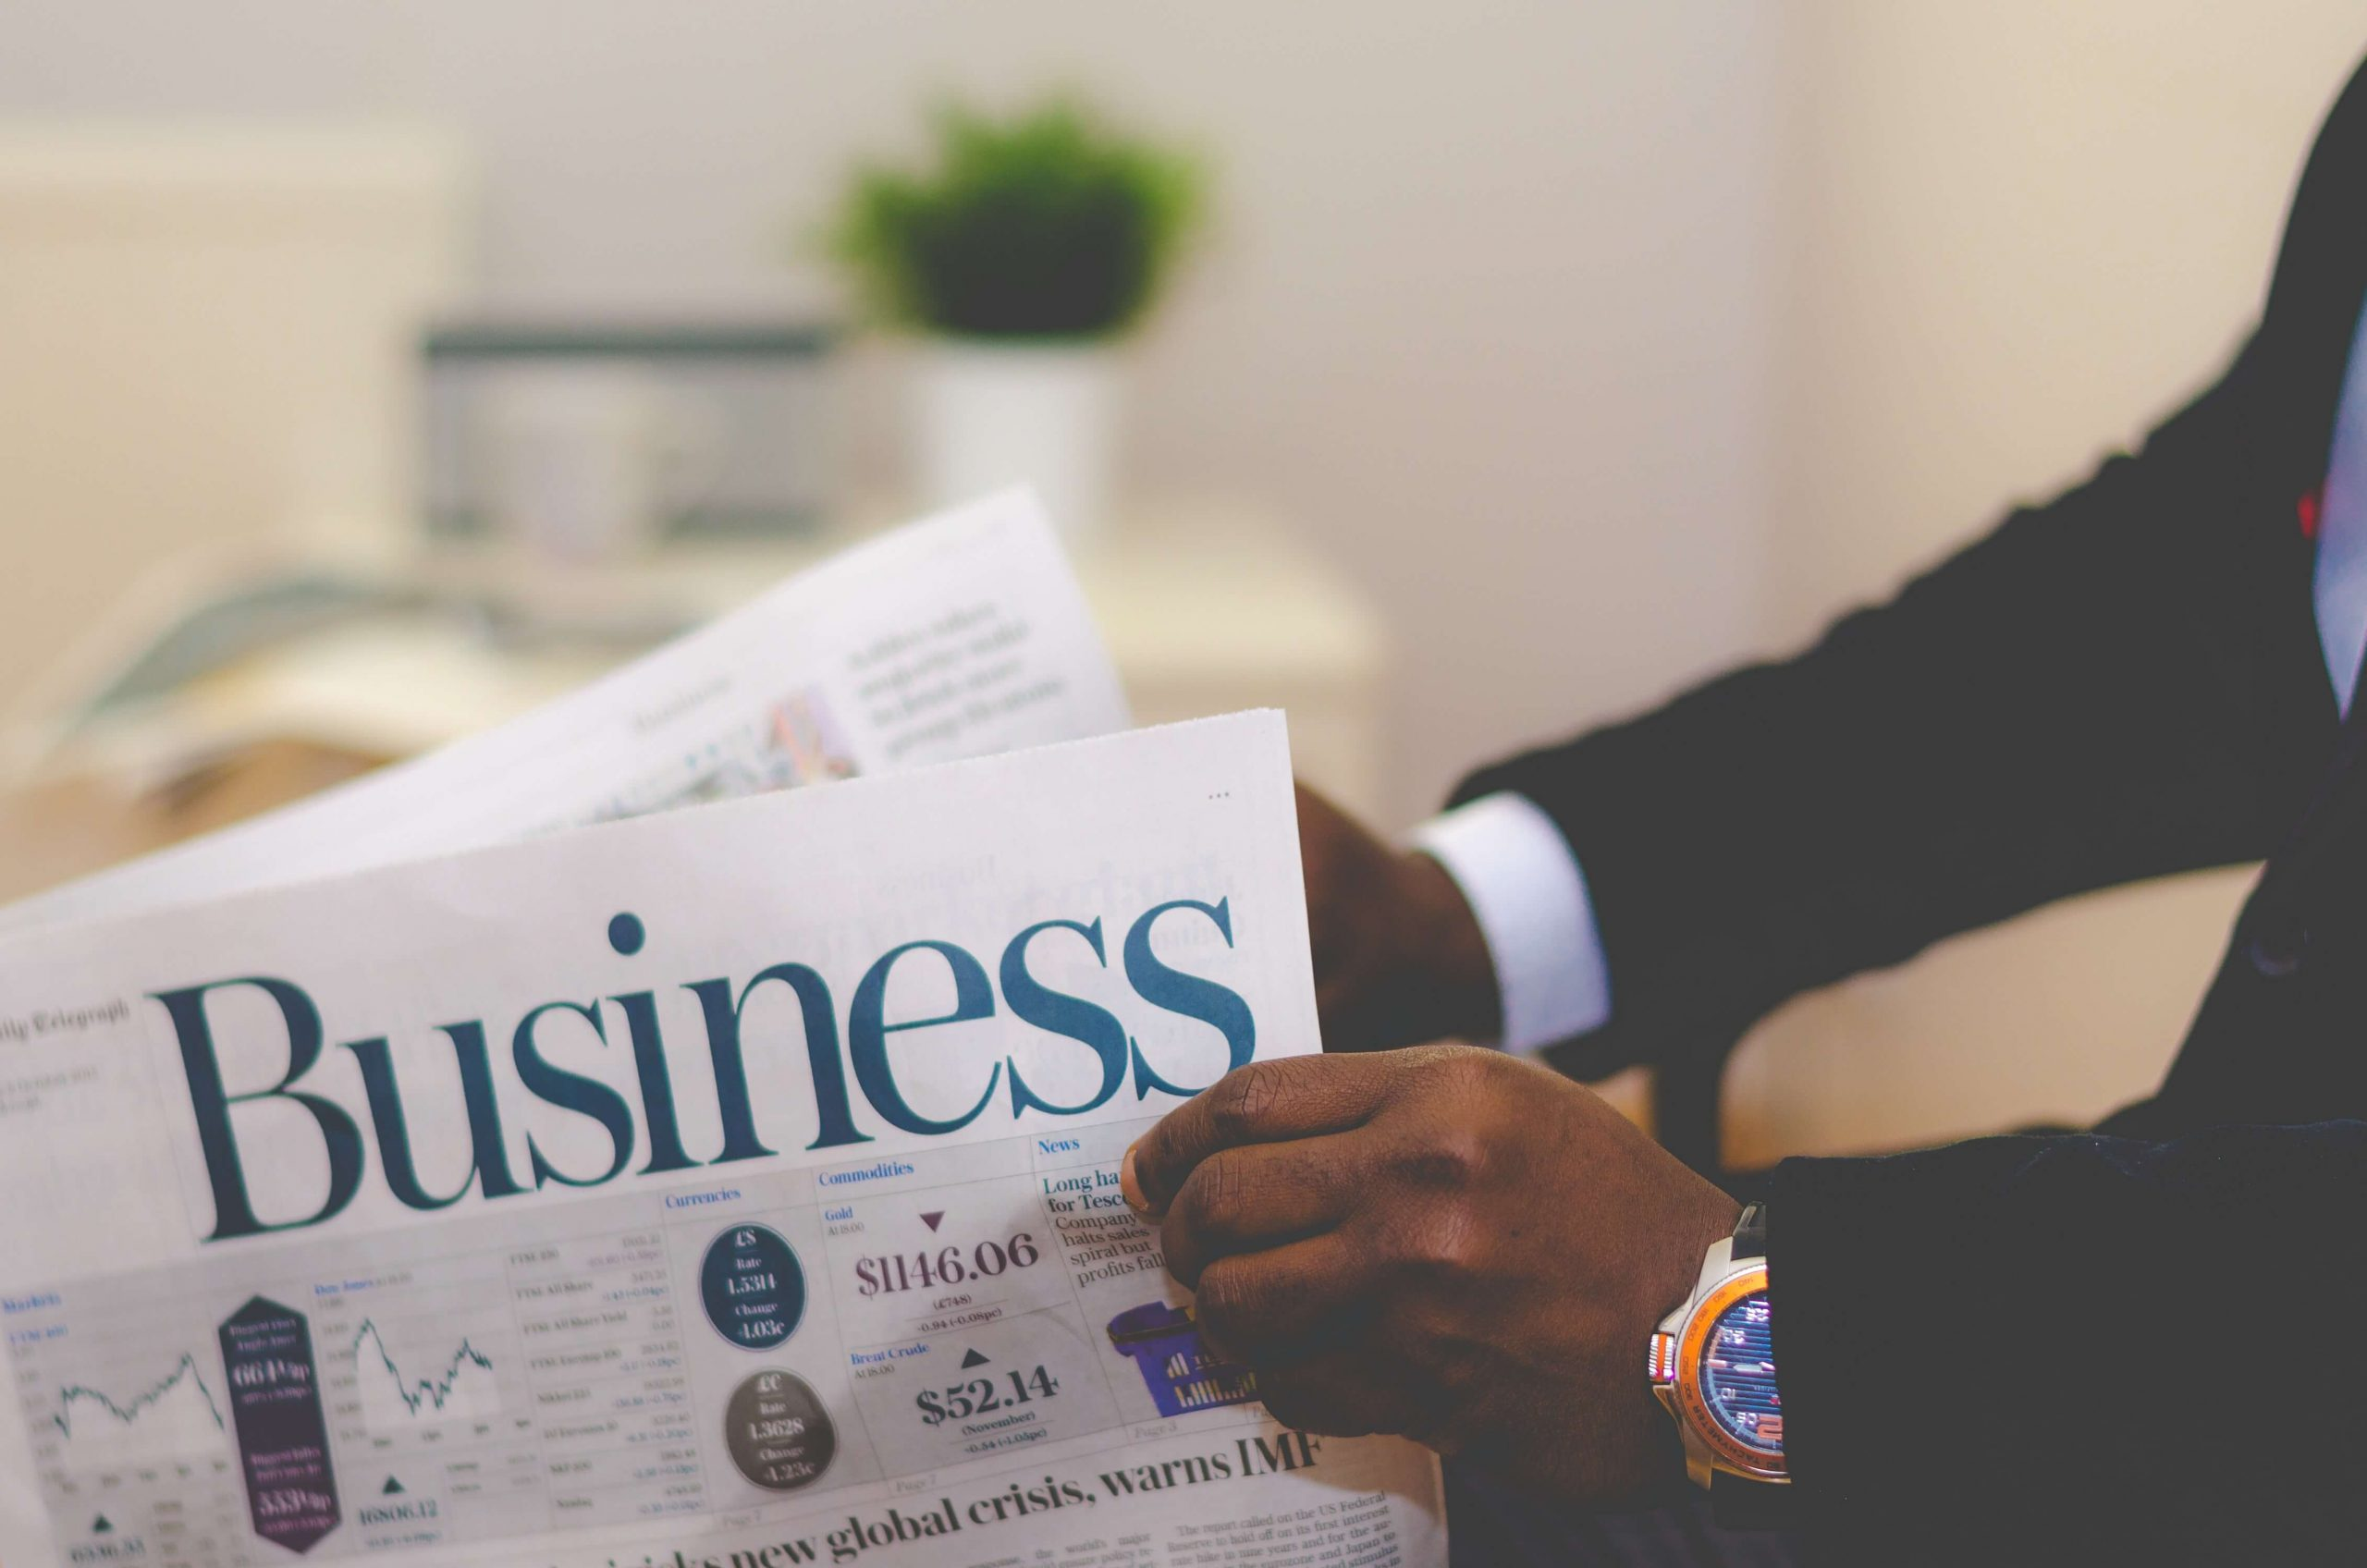 Man reading the business section of a newspaper